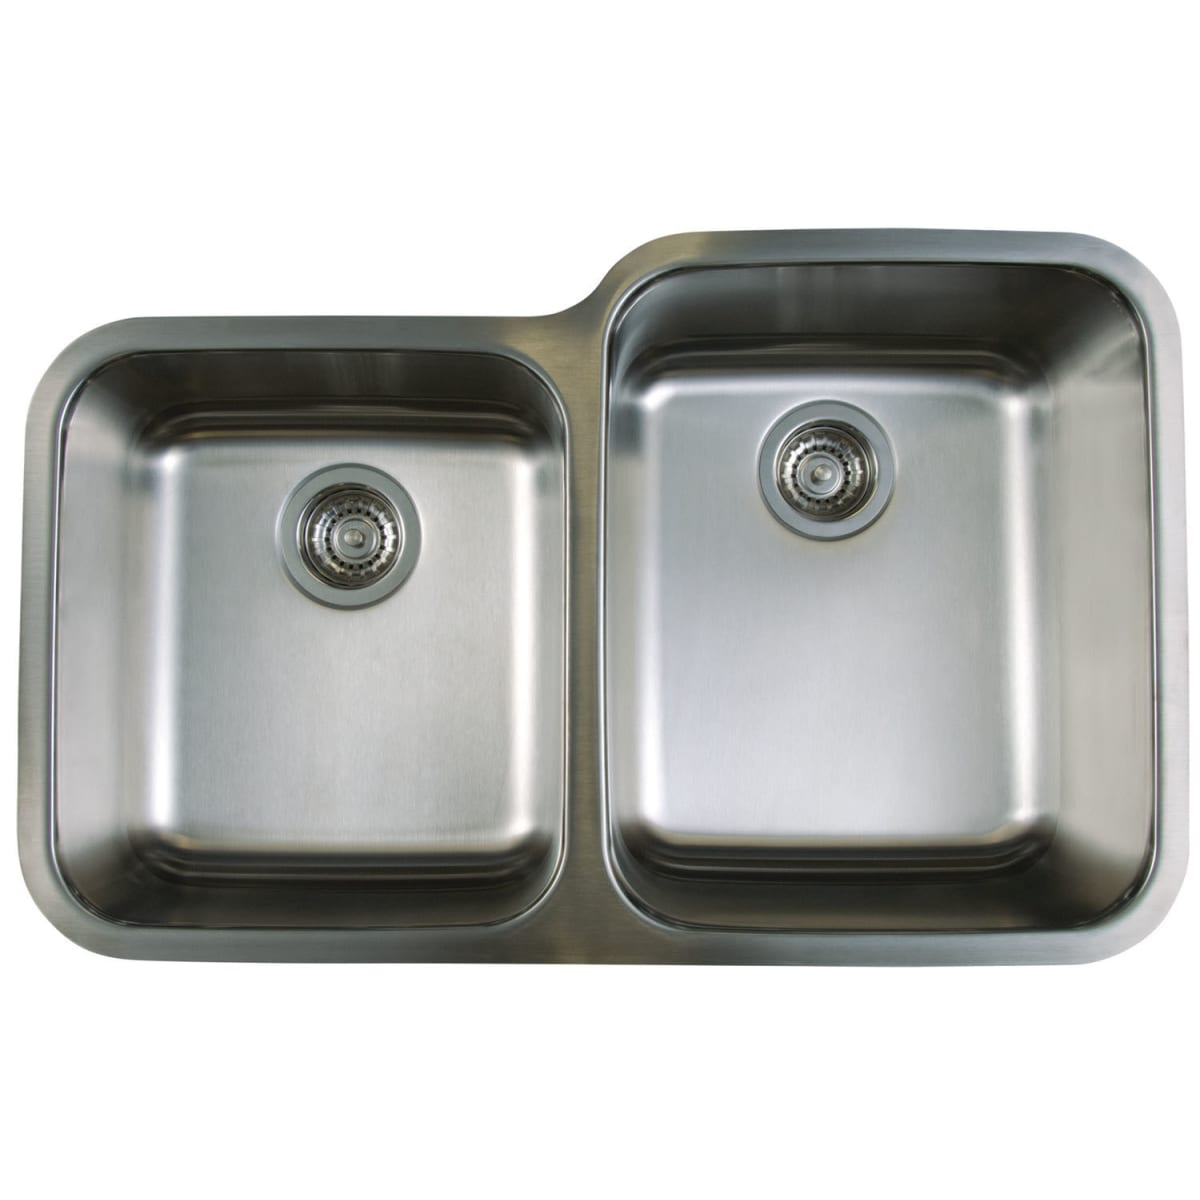 "Blanco Stellar Stainless Steel Undermount Double Basin Kitchen Sink 32.33"" x 20.5"""